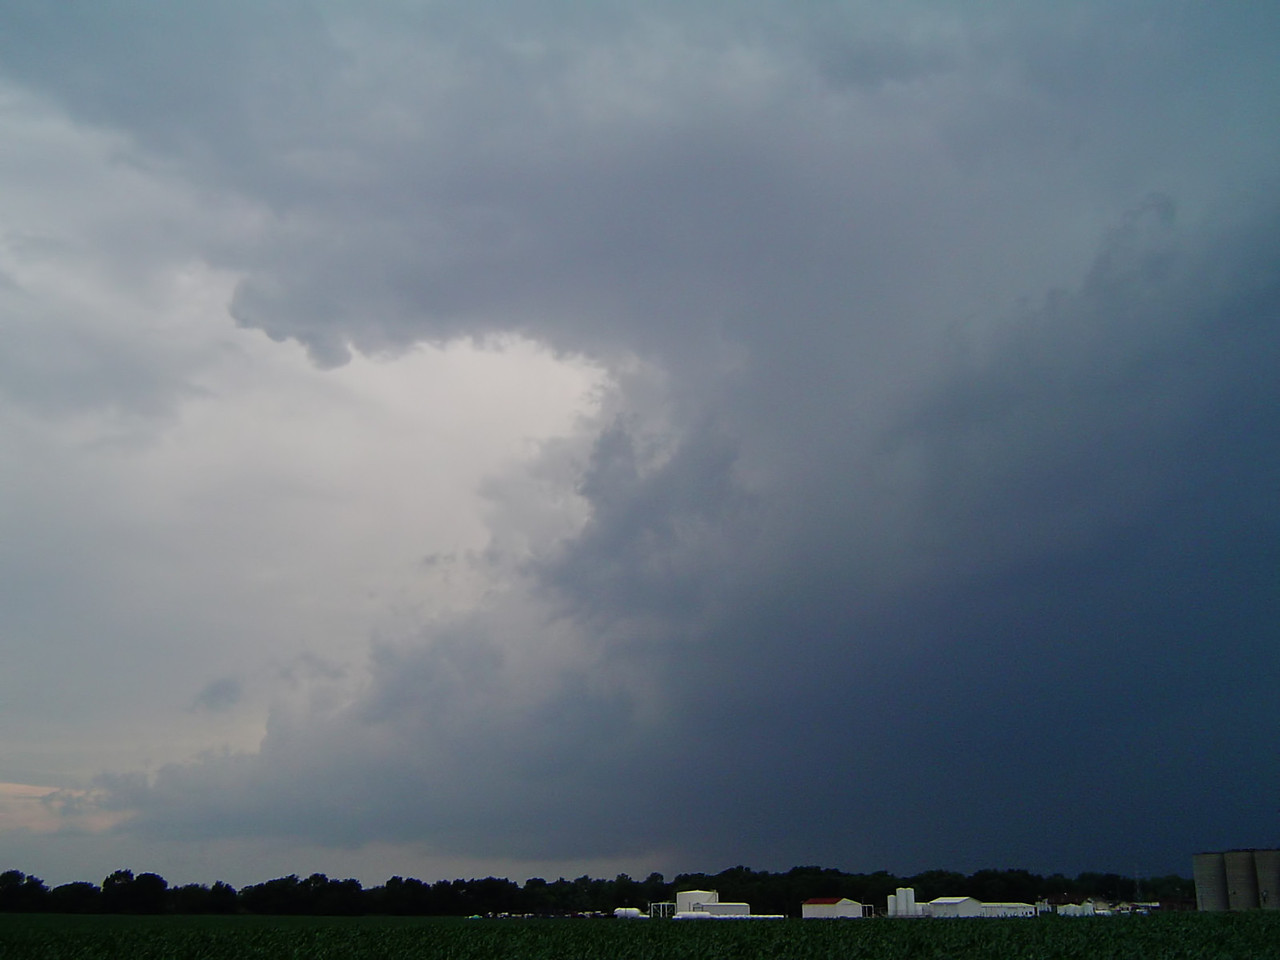 "May 30 - NW Macon County IL (tornado warned storm)<br /> <br /> Related link <a href=""http://www.crh.noaa.gov/ilx/events/may302004/may30.php"">http://www.crh.noaa.gov/ilx/events/may302004/may30.php</a>"